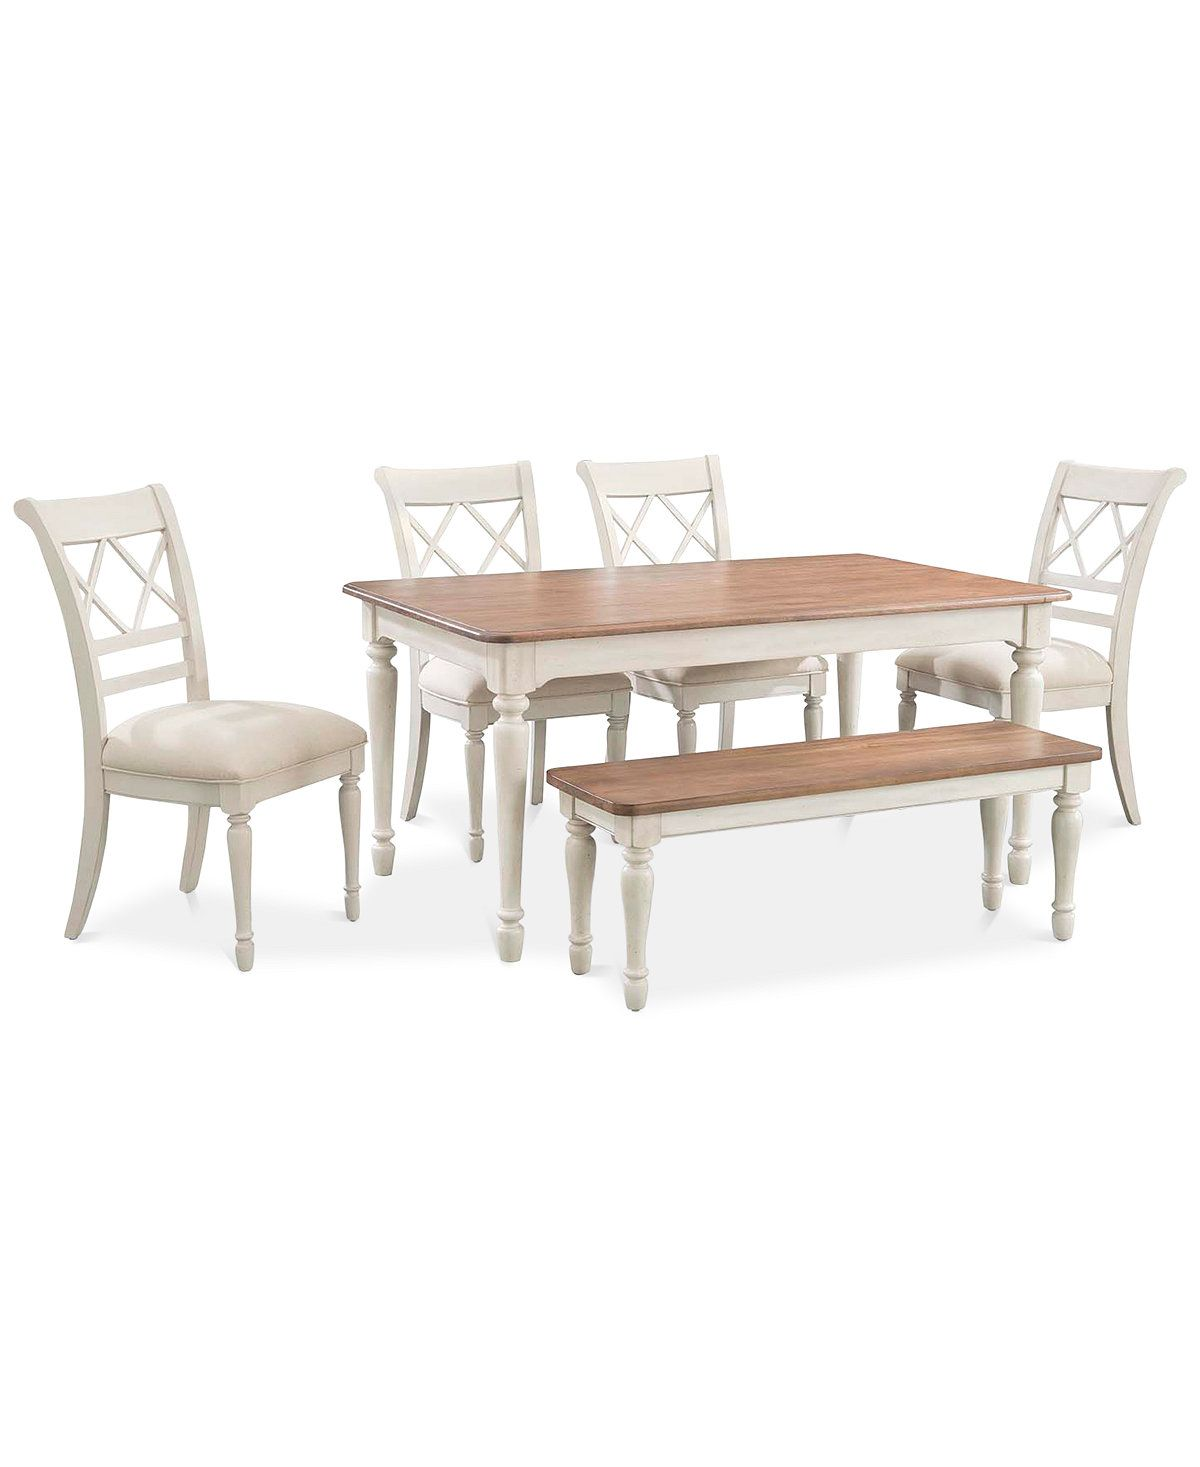 Exceptionnel Cape May Dining Set, 6 Pc. (Dining Table, 4 Side Chairs